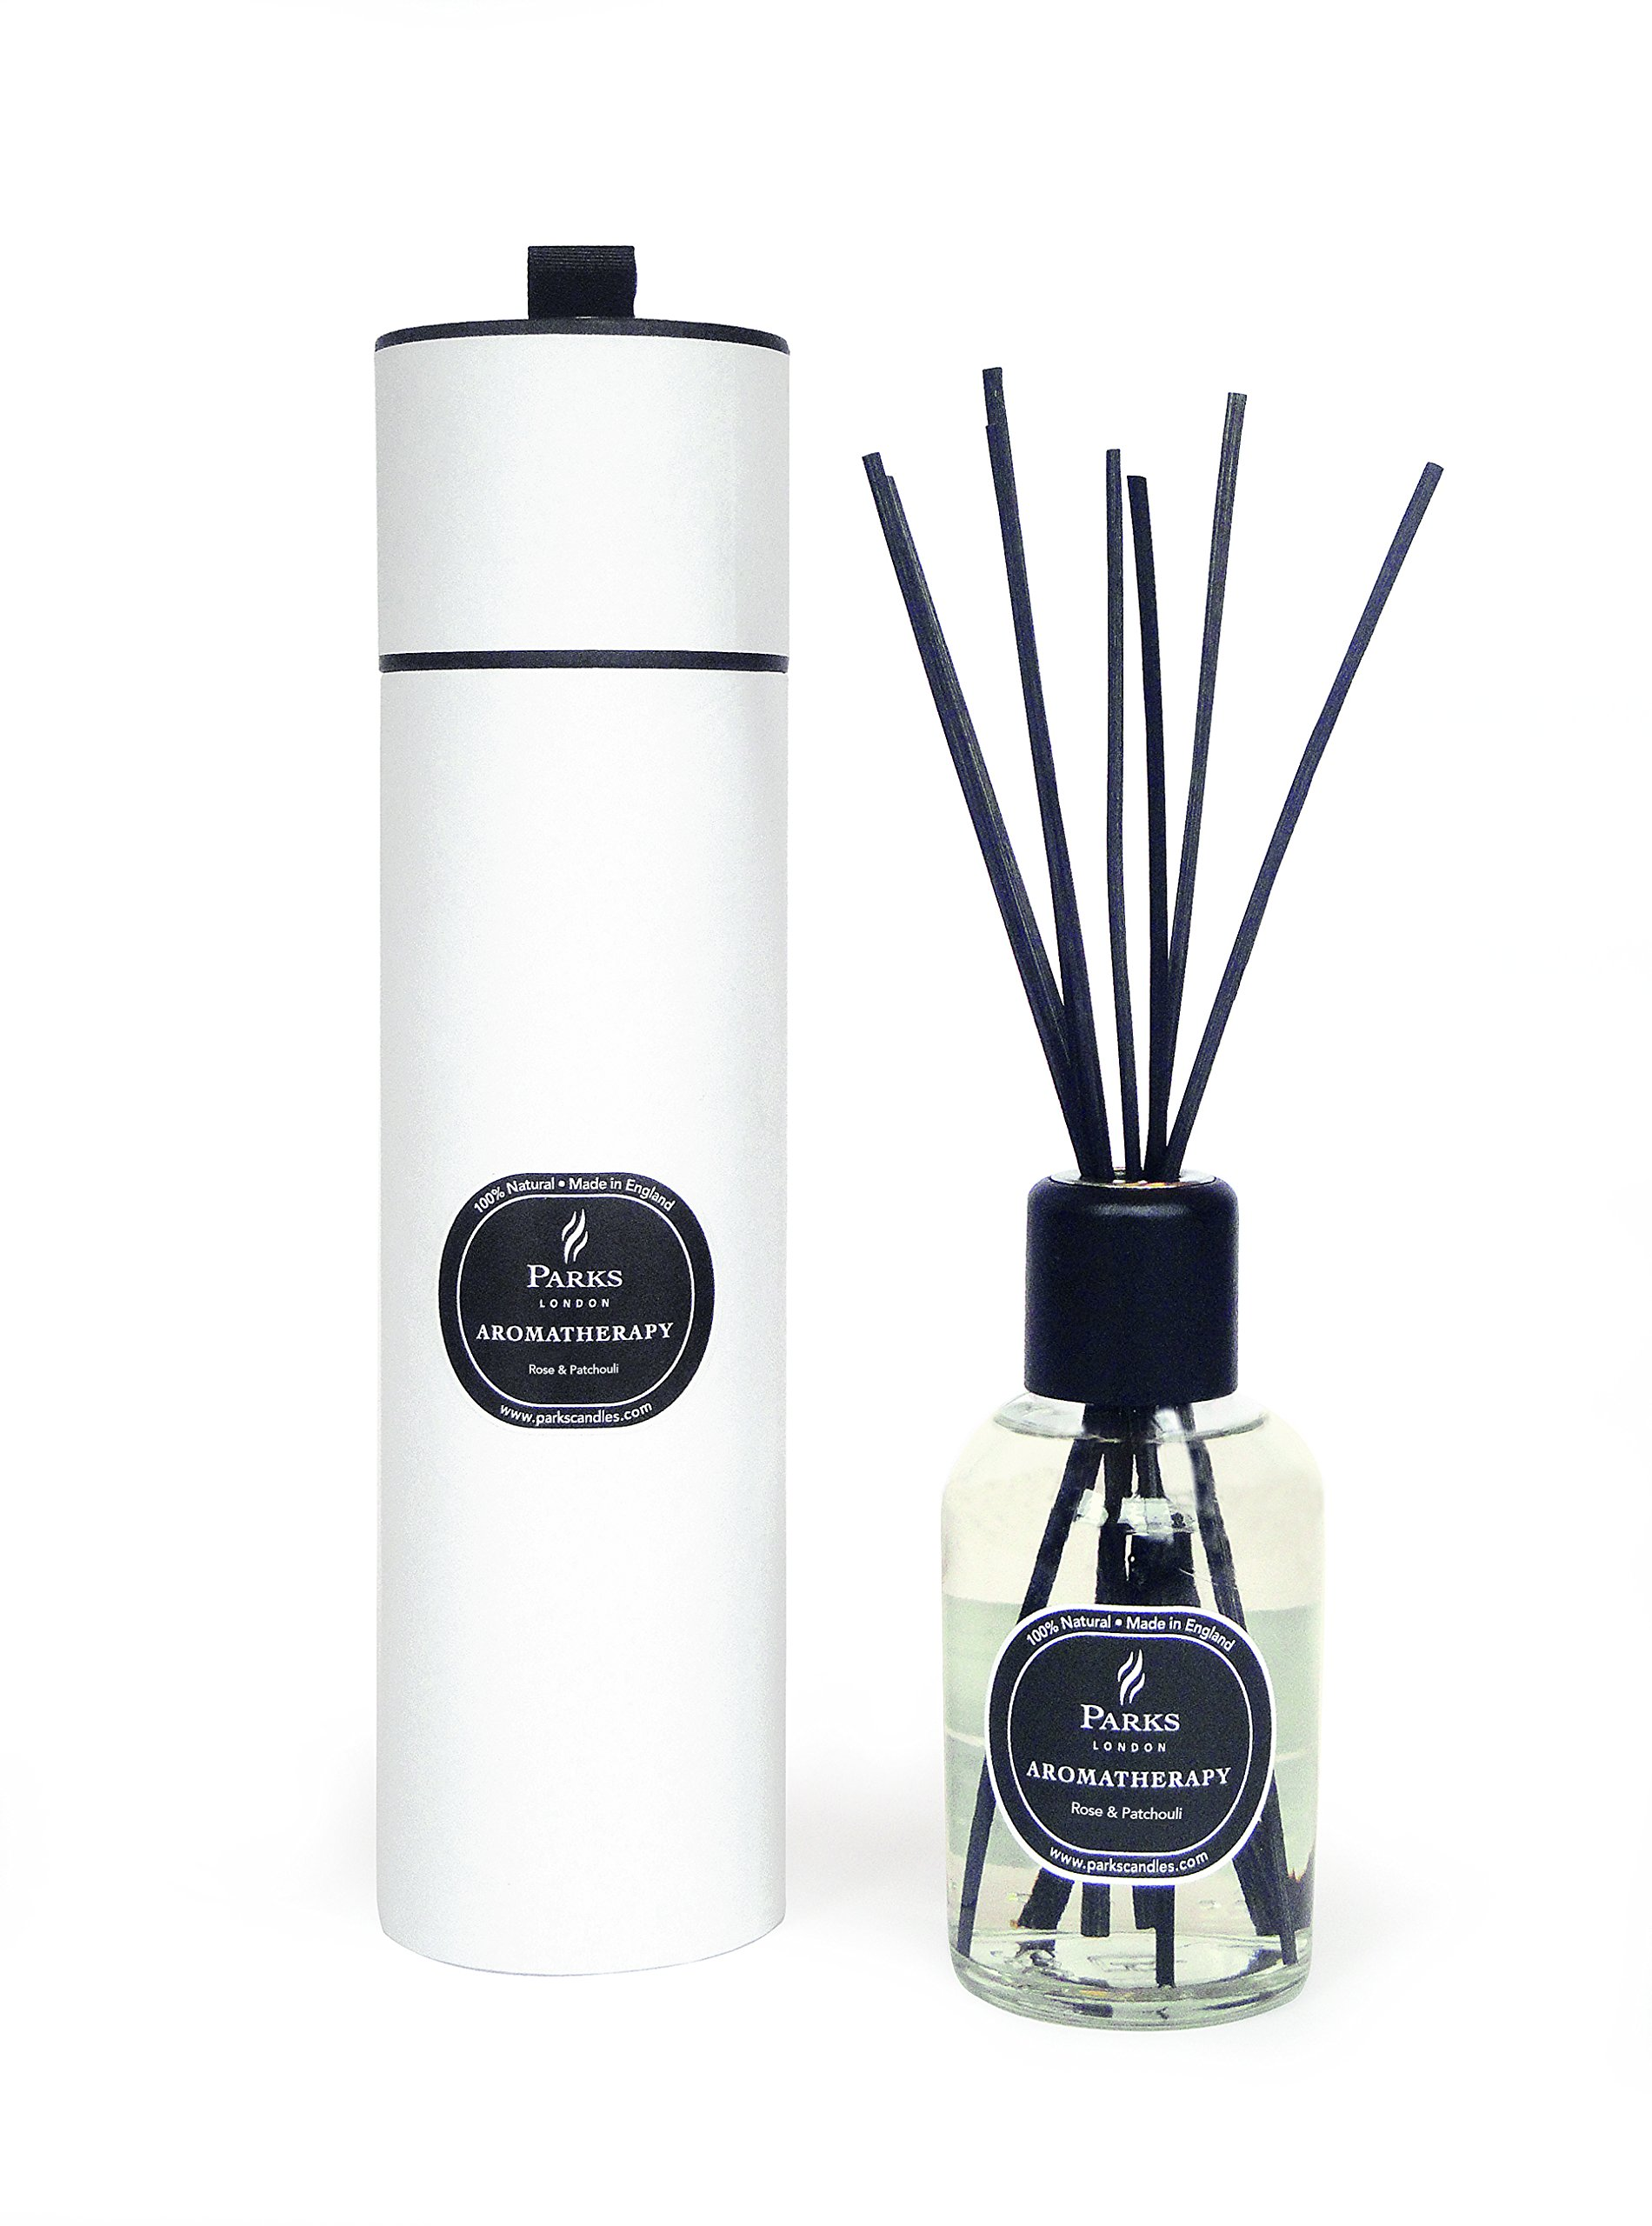 Rose and Patchouli Aromatherapy Reed Room Diffuser by Diffuser - Parks London